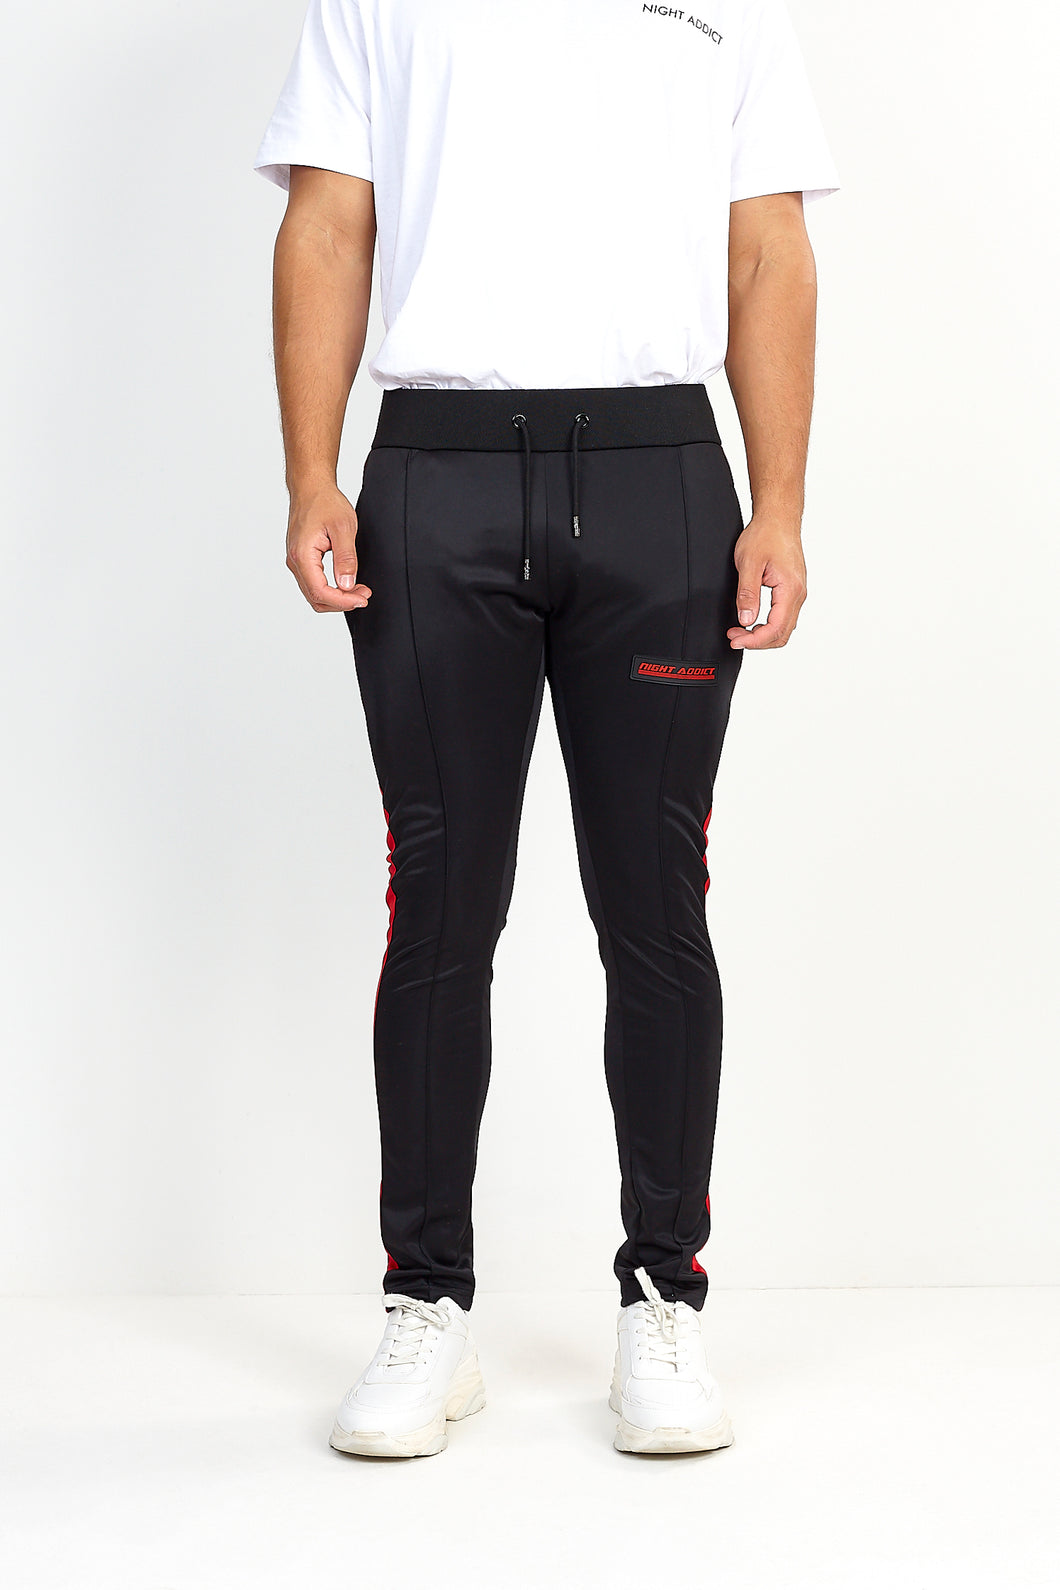 NIGHT ADDICT TECHNICAL TRACK PANTS – BLACK WITH RED